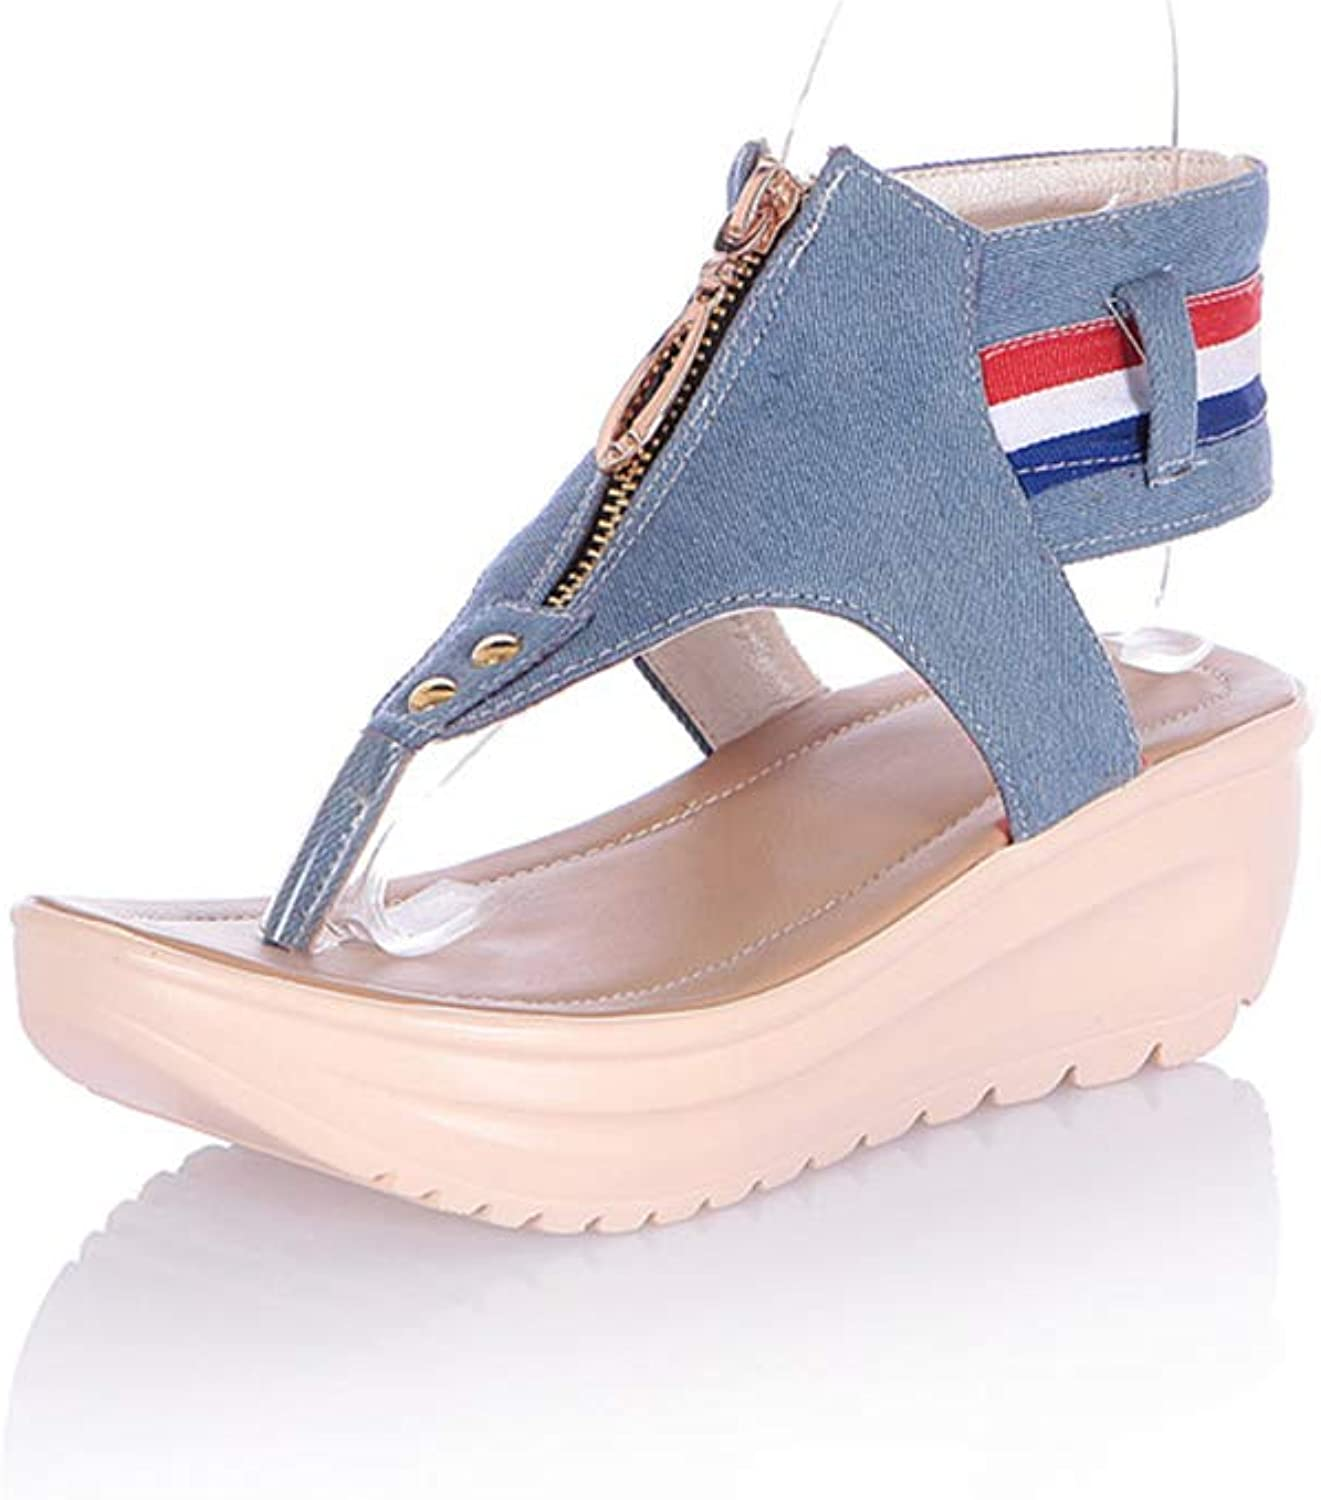 Women Sandals Ladies Beach Slippers Punk Denim Pin Toe Comfy Peep Toe Buckle Breathable shoes Leather Casual shoes,A,42